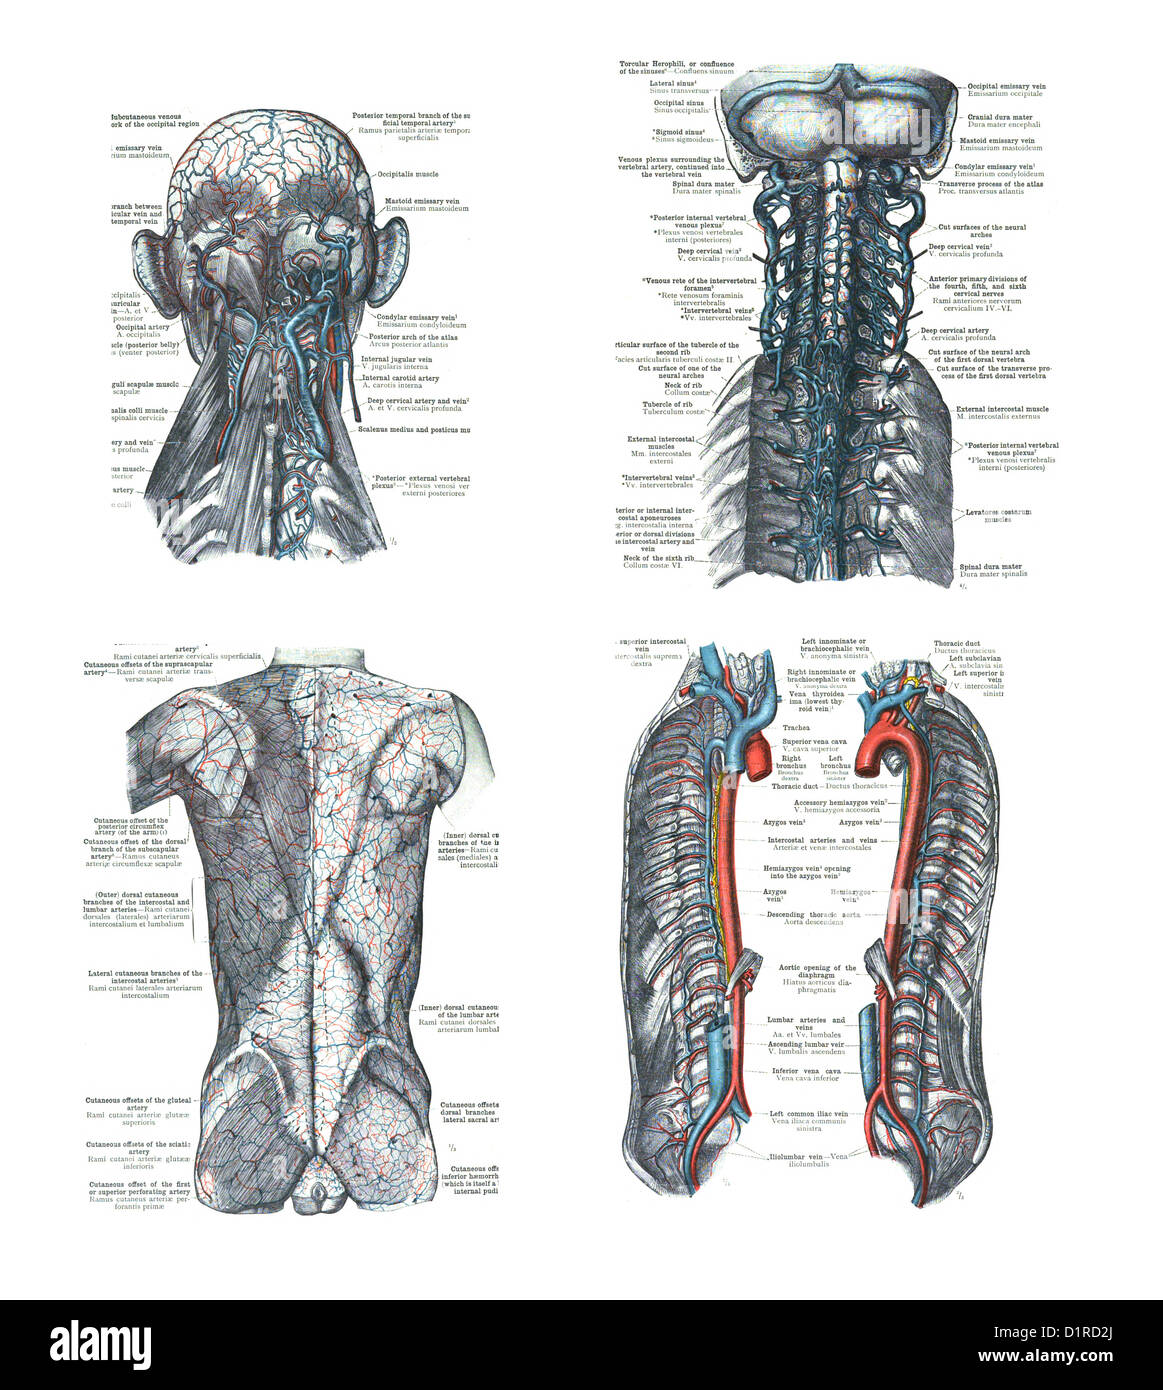 4 Views of the human head, spine, and back An atlas of human anatomy ...